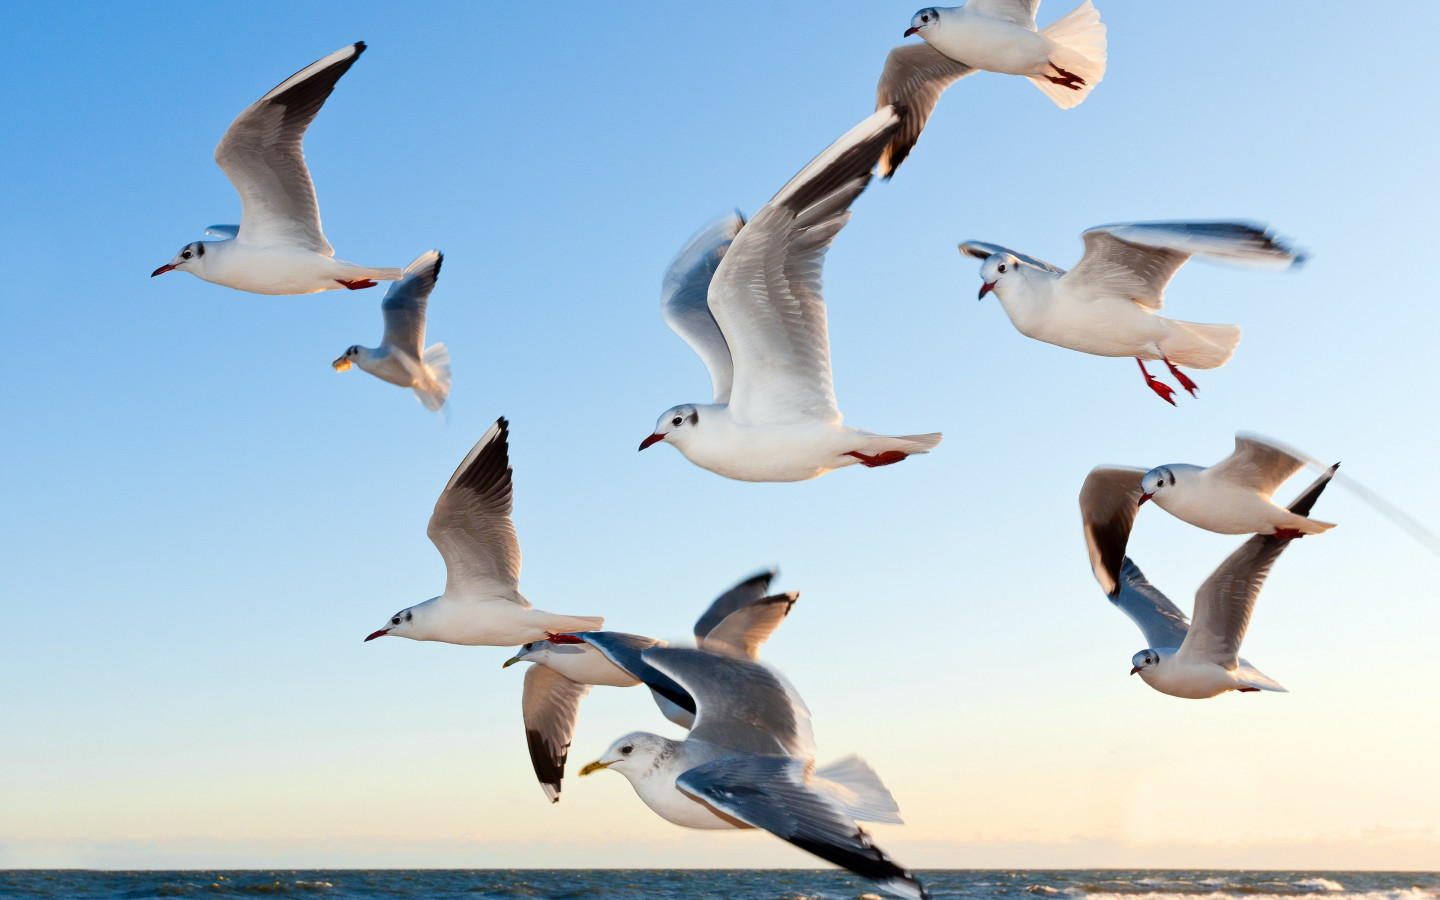 Seagulls wallpaper 1440x900